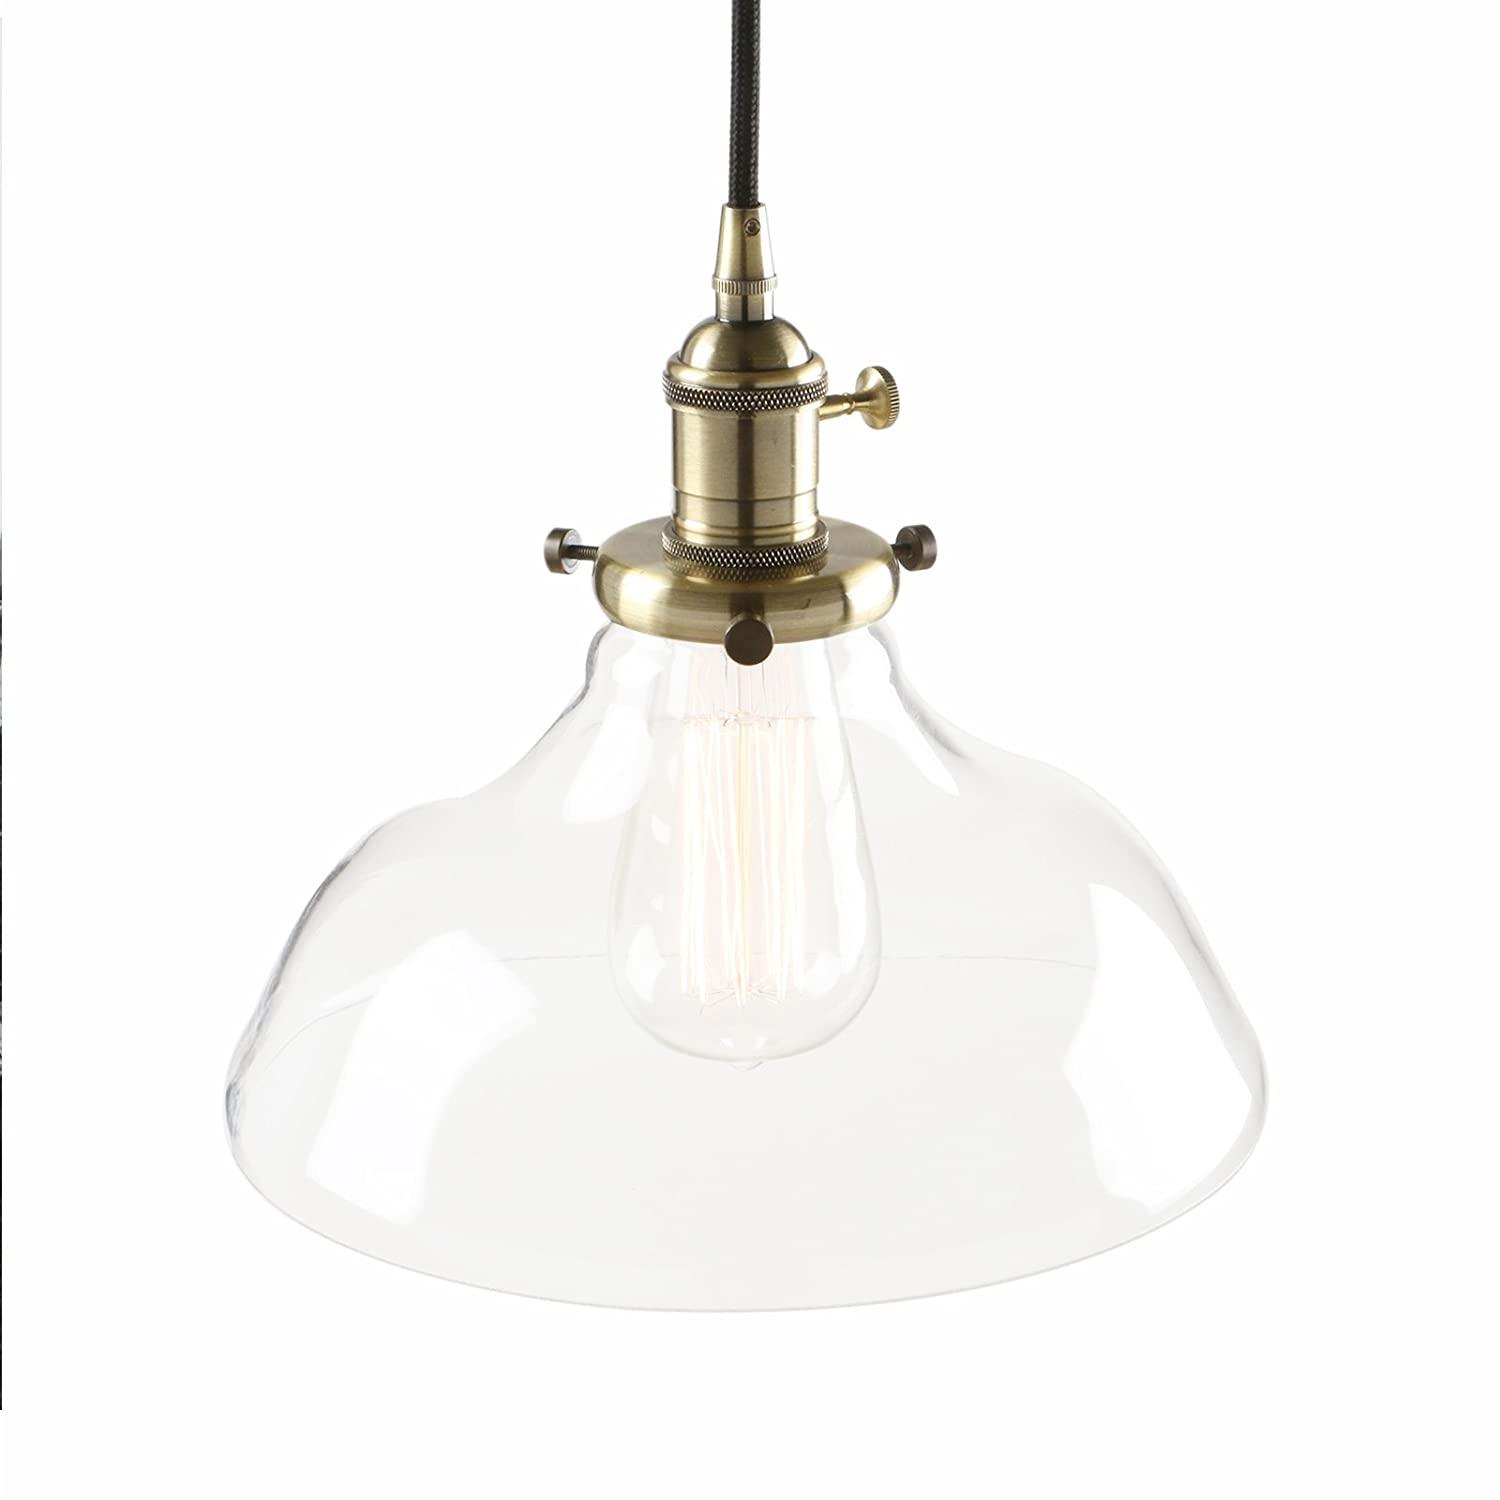 Pathson 9.8 Inch Industrial Vintage Modern Dome Clear Glass Shade Loft Bar Kitchen Island Chandelier Edison Hanging Pendant Ceiling Light Lamp Fixture (Antique)